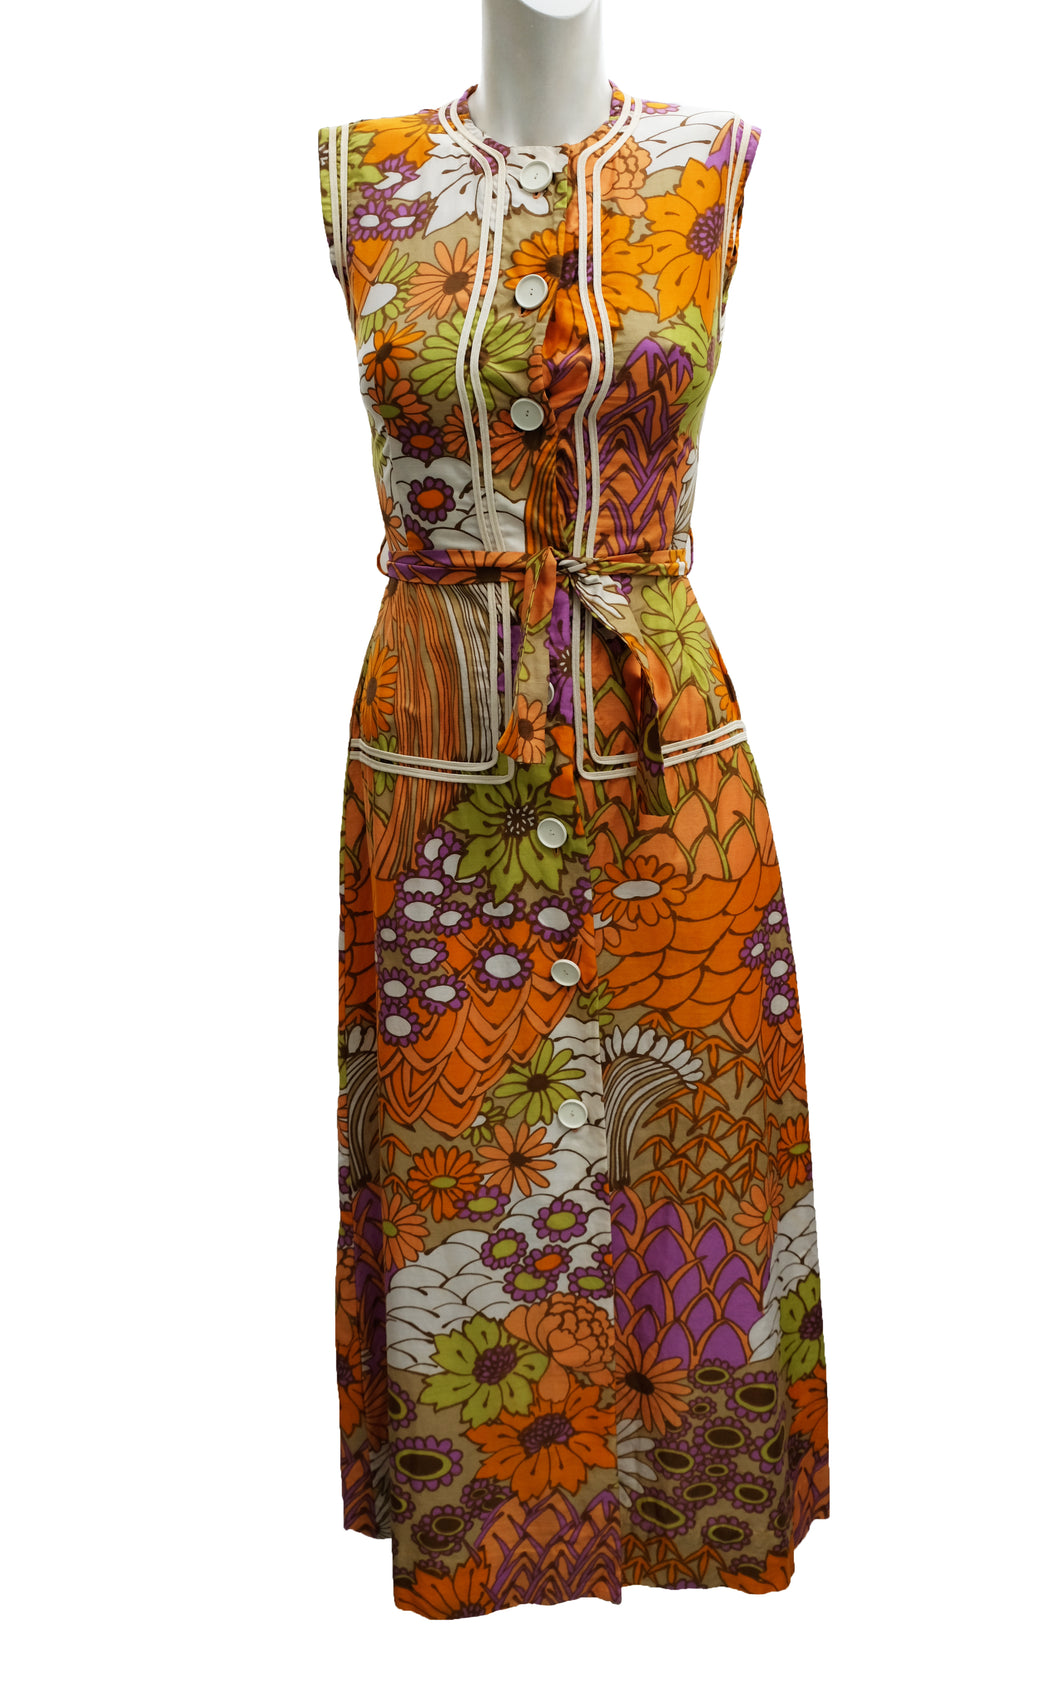 Gerald Davies Vintage  Trippy Floral Summer Dress, UK8-10